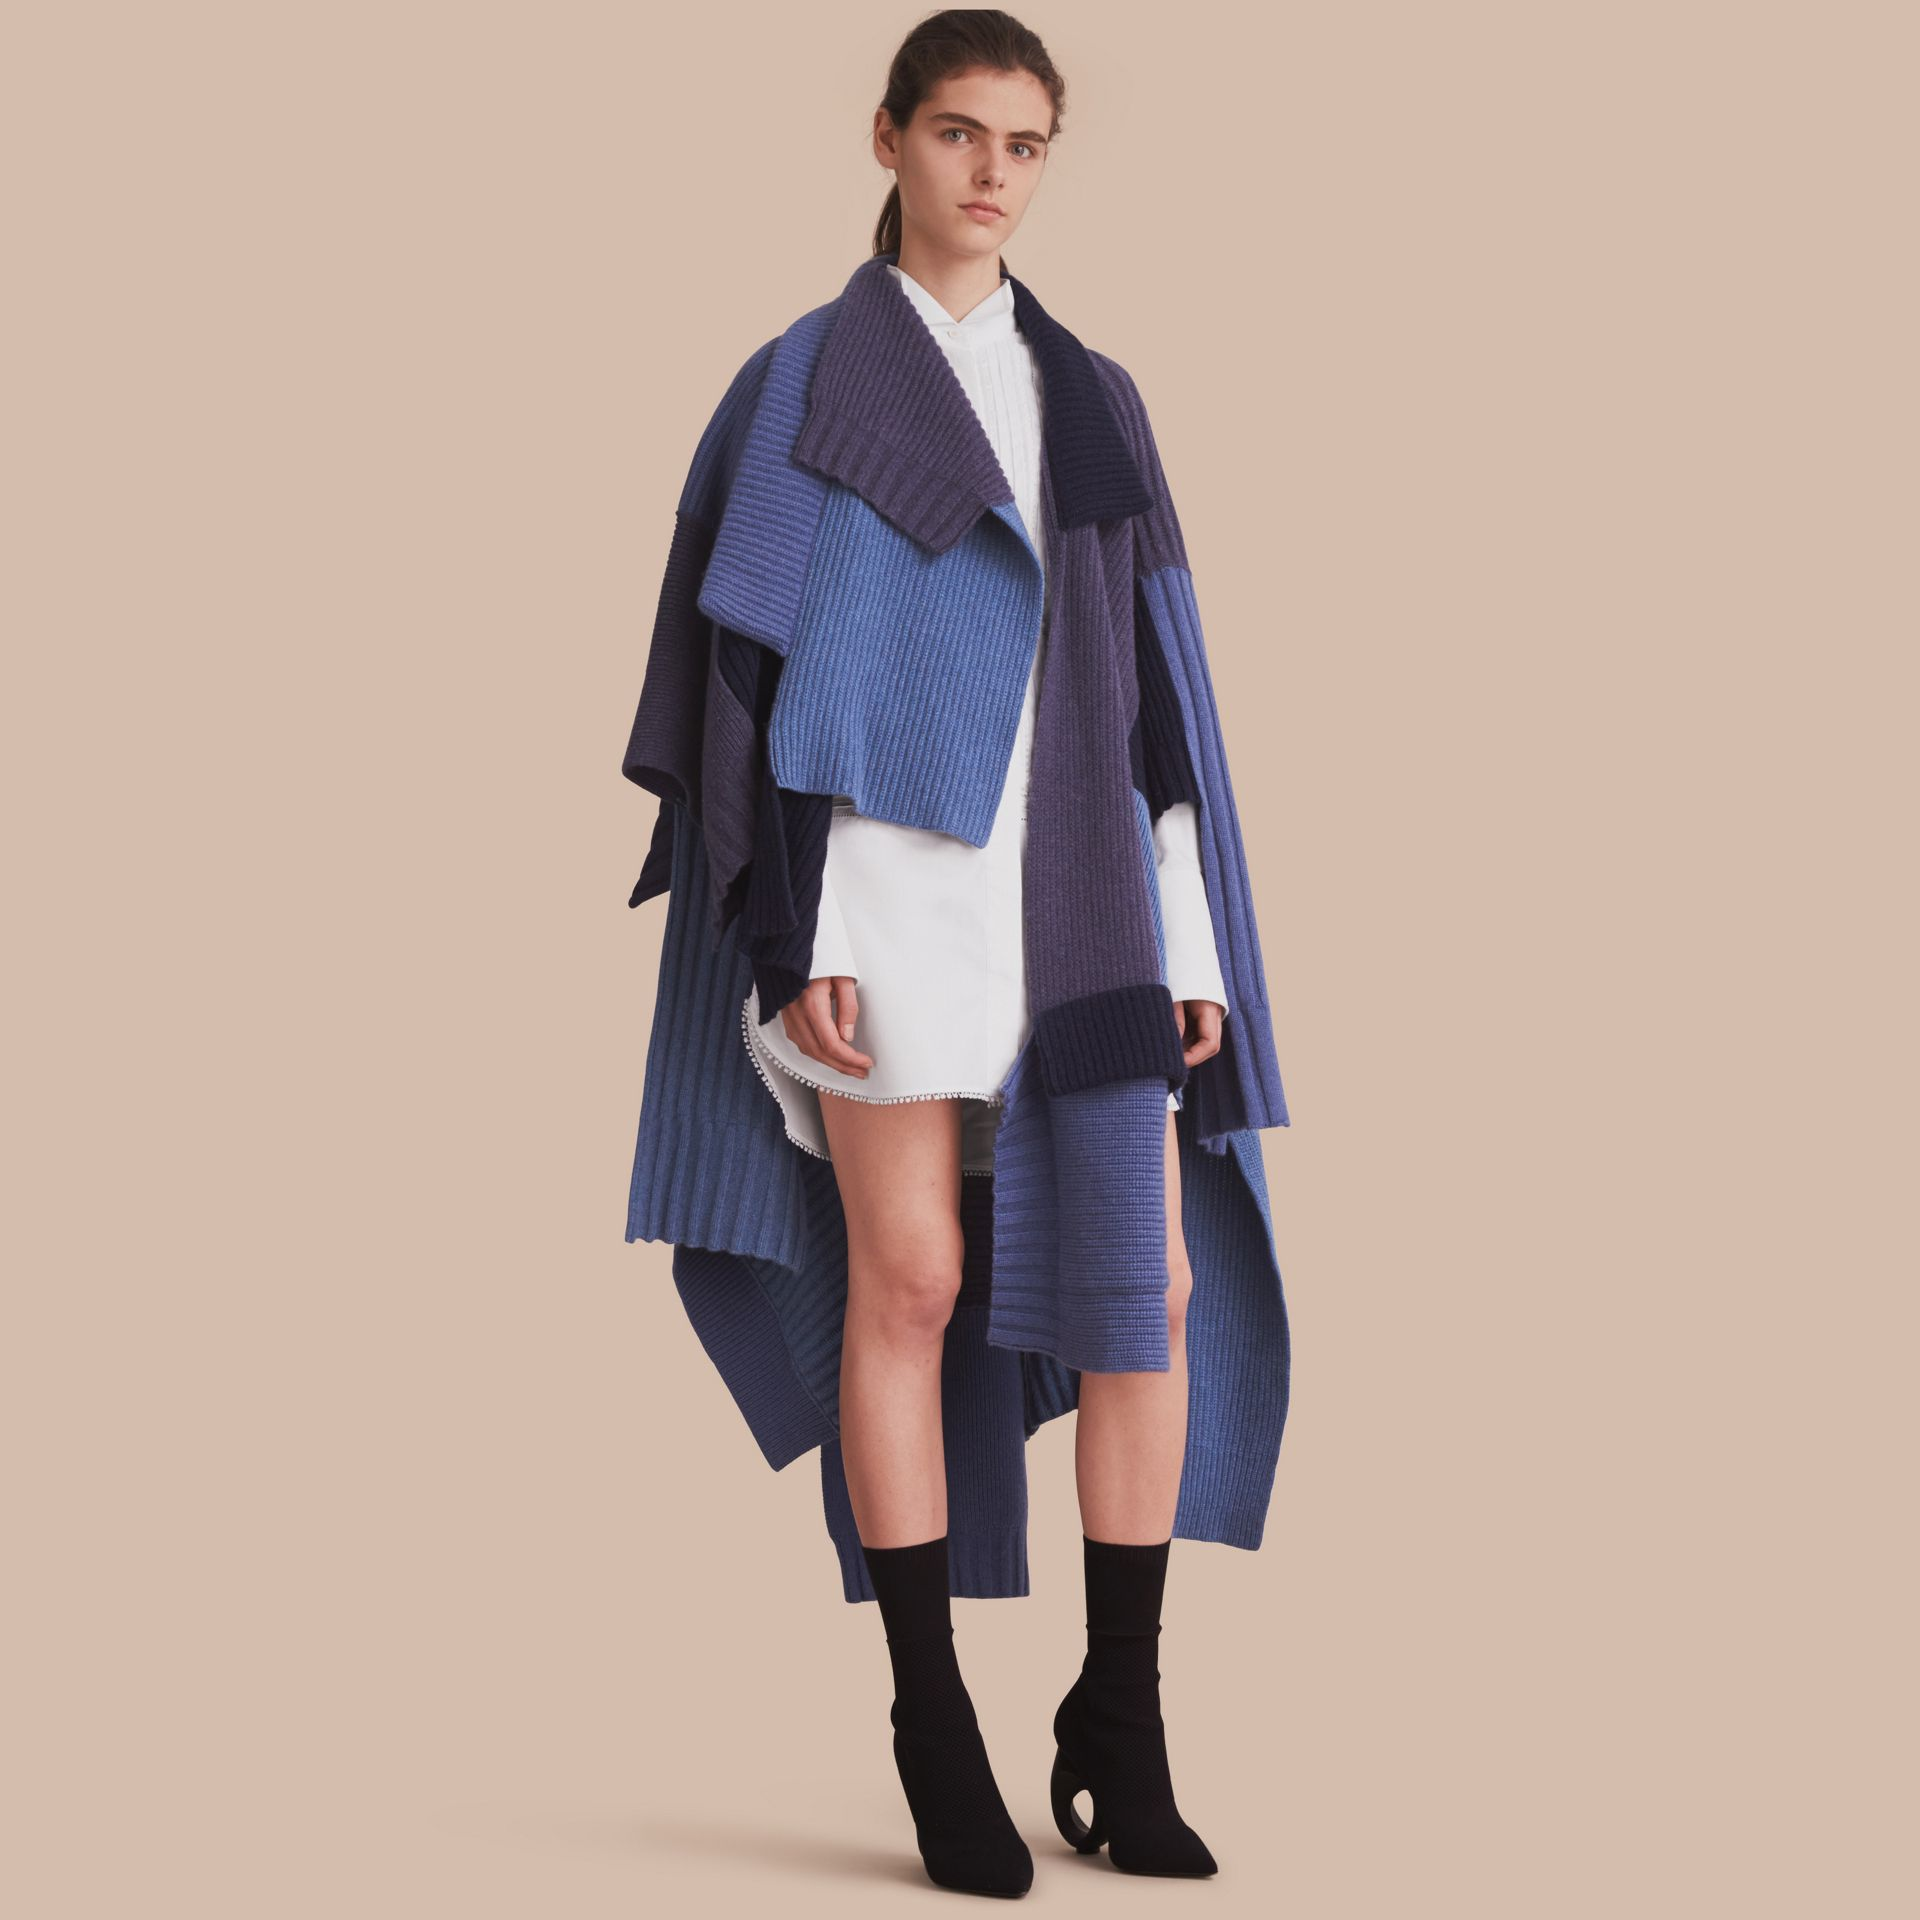 Wool Cashmere Patchwork Poncho in Carbon Blue - Women | Burberry Singapore - gallery image 1